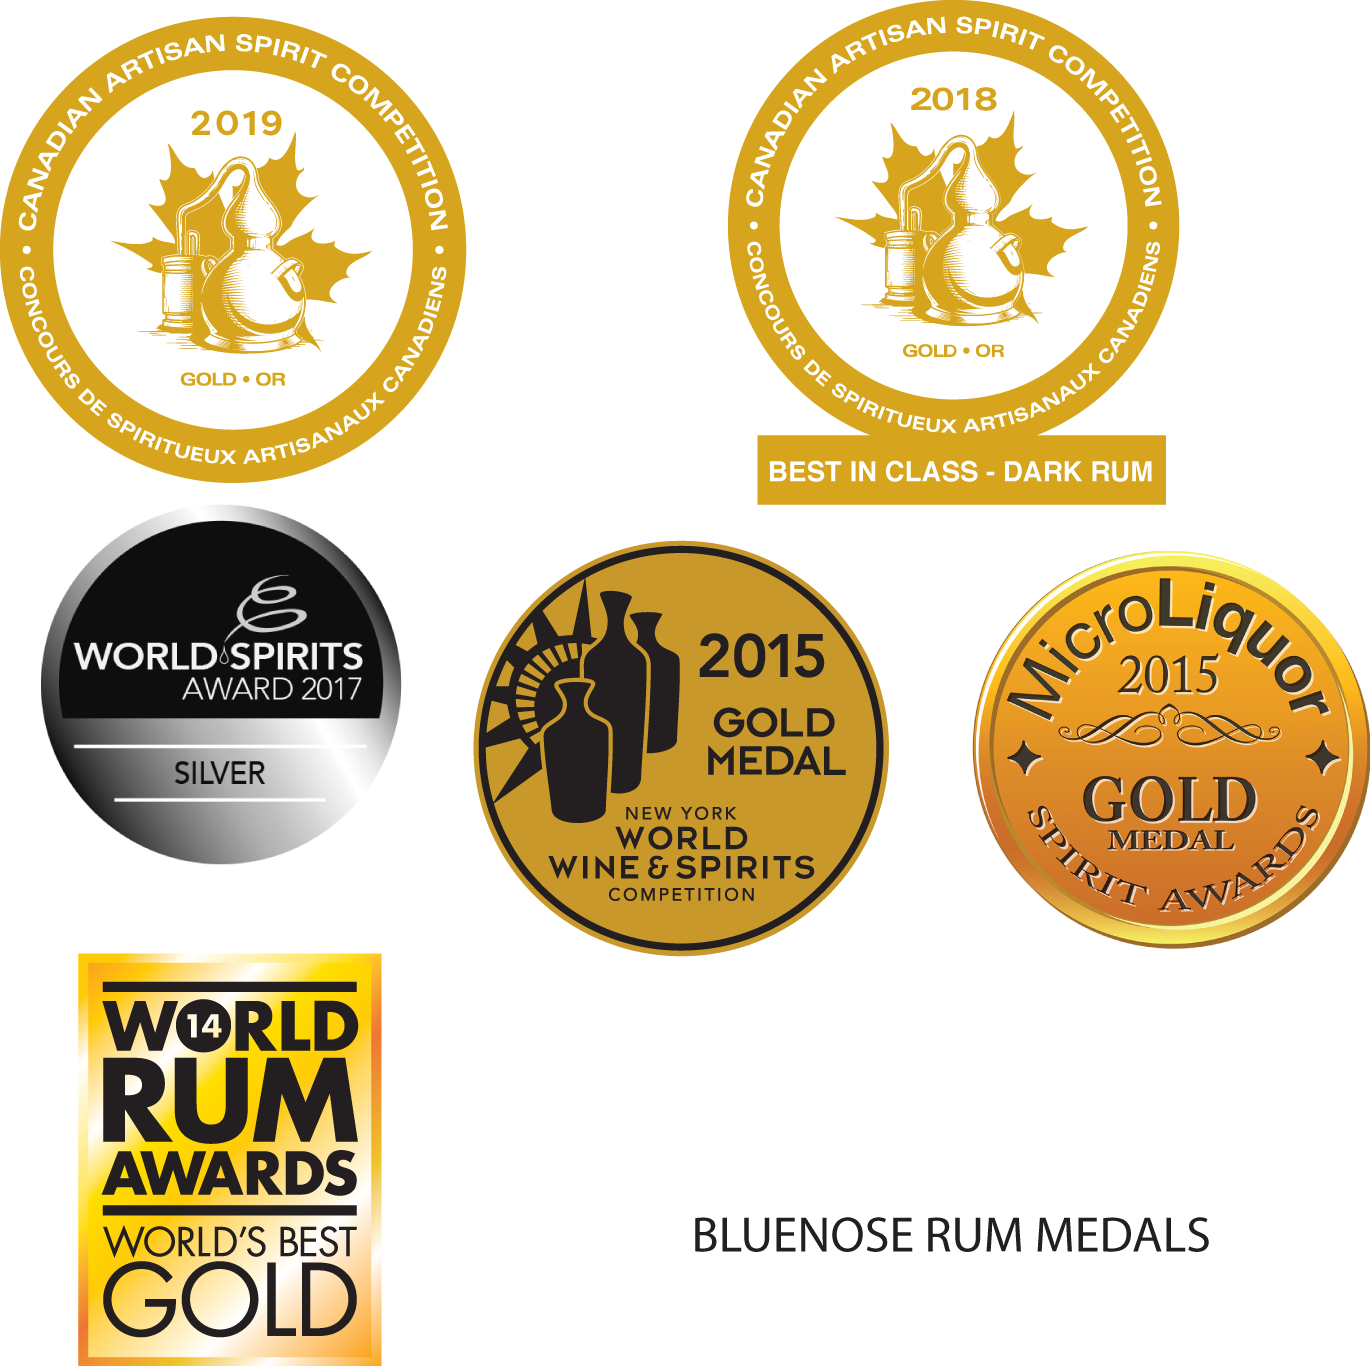 GOLD MEDAL Canadian Artisan Spirit Competition 2019 - Rum